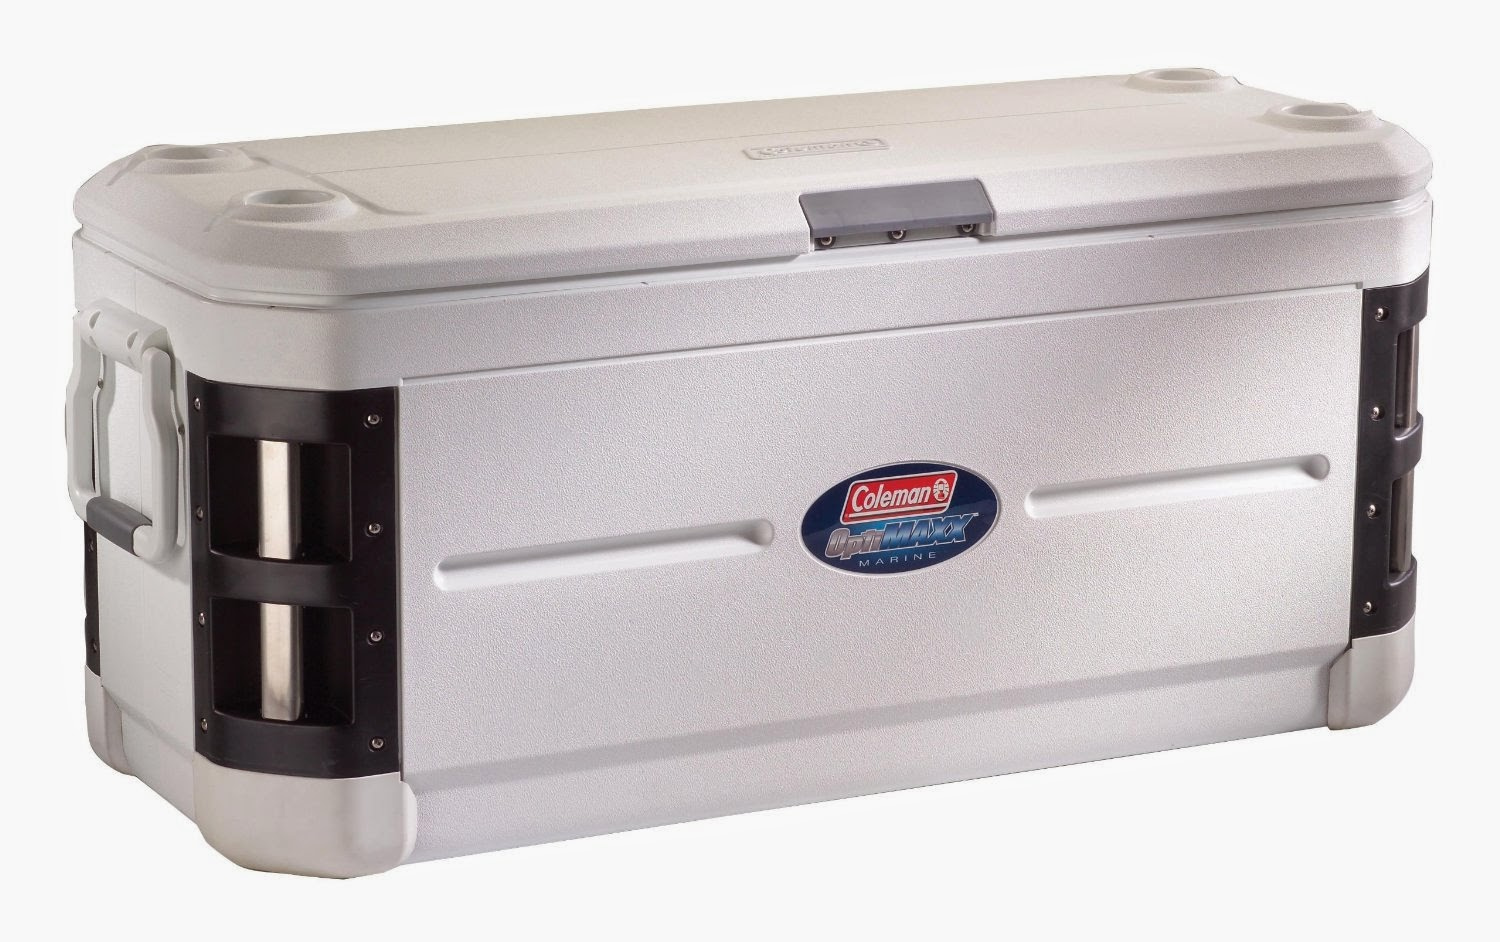 Stainless Steel Cooler Coleman Stainless Steel Cooler